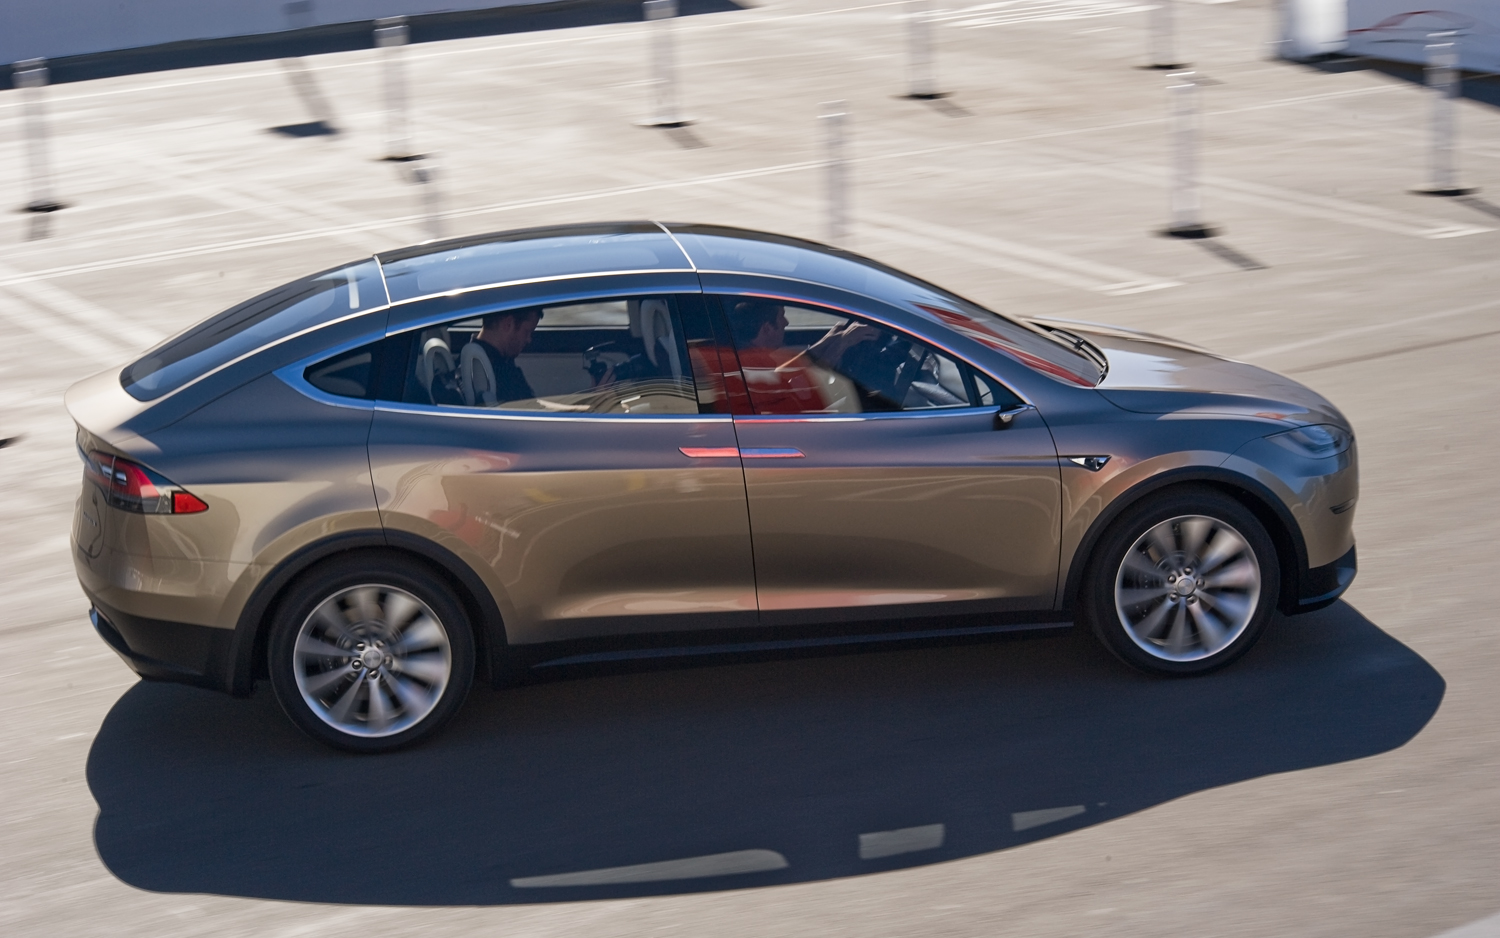 Tesla-Model-X-Side-View-in-motion.jpg